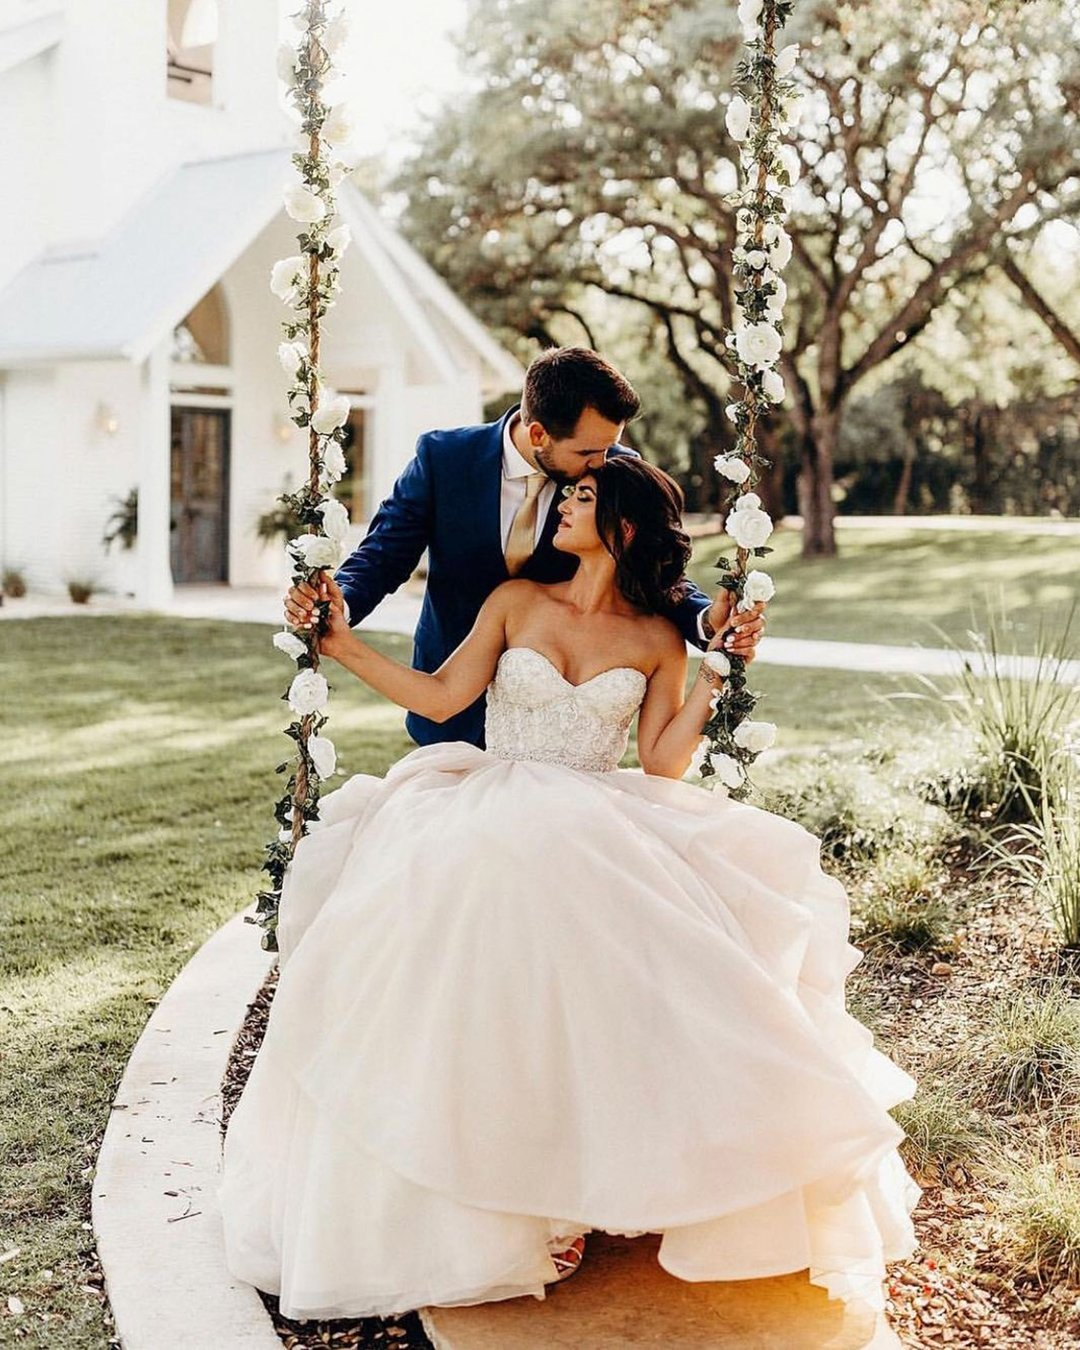 cute wedding photos couple on swing under tree rachelantigua